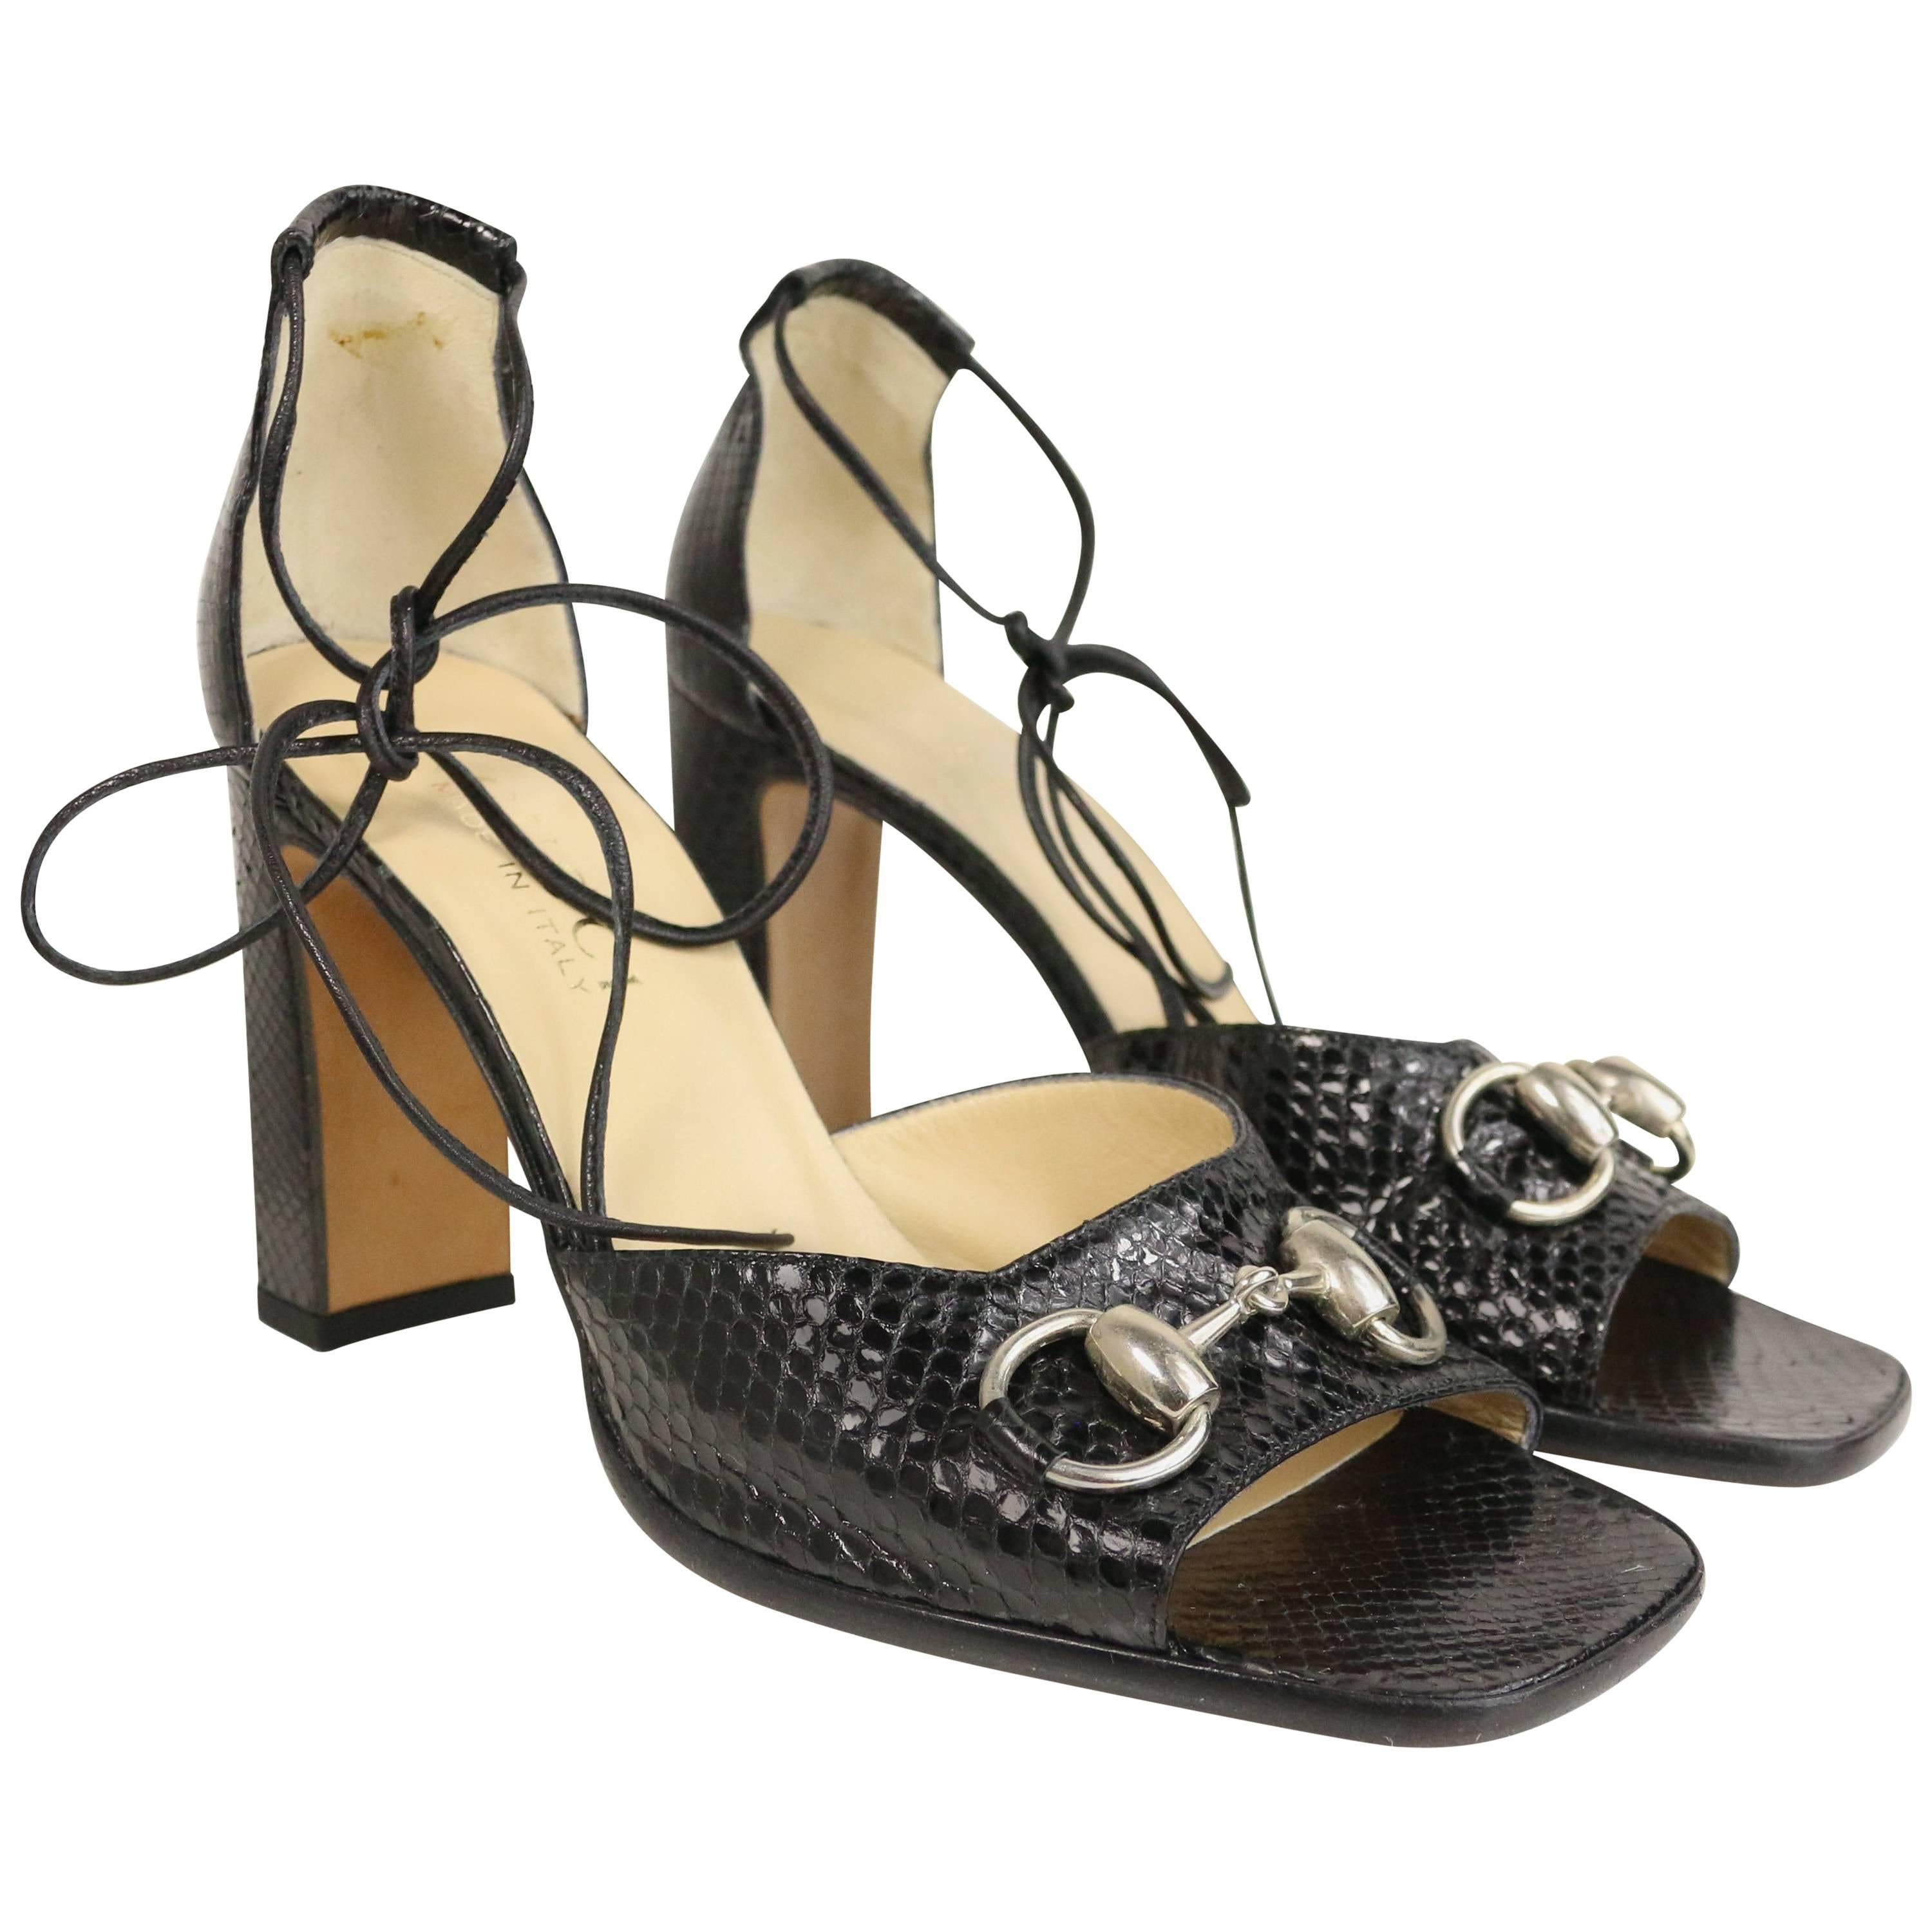 28d8542c70 Gucci by Tom Ford Classic Black Python Open Toe Lace Up Sandals Heels For  Sale at 1stdibs